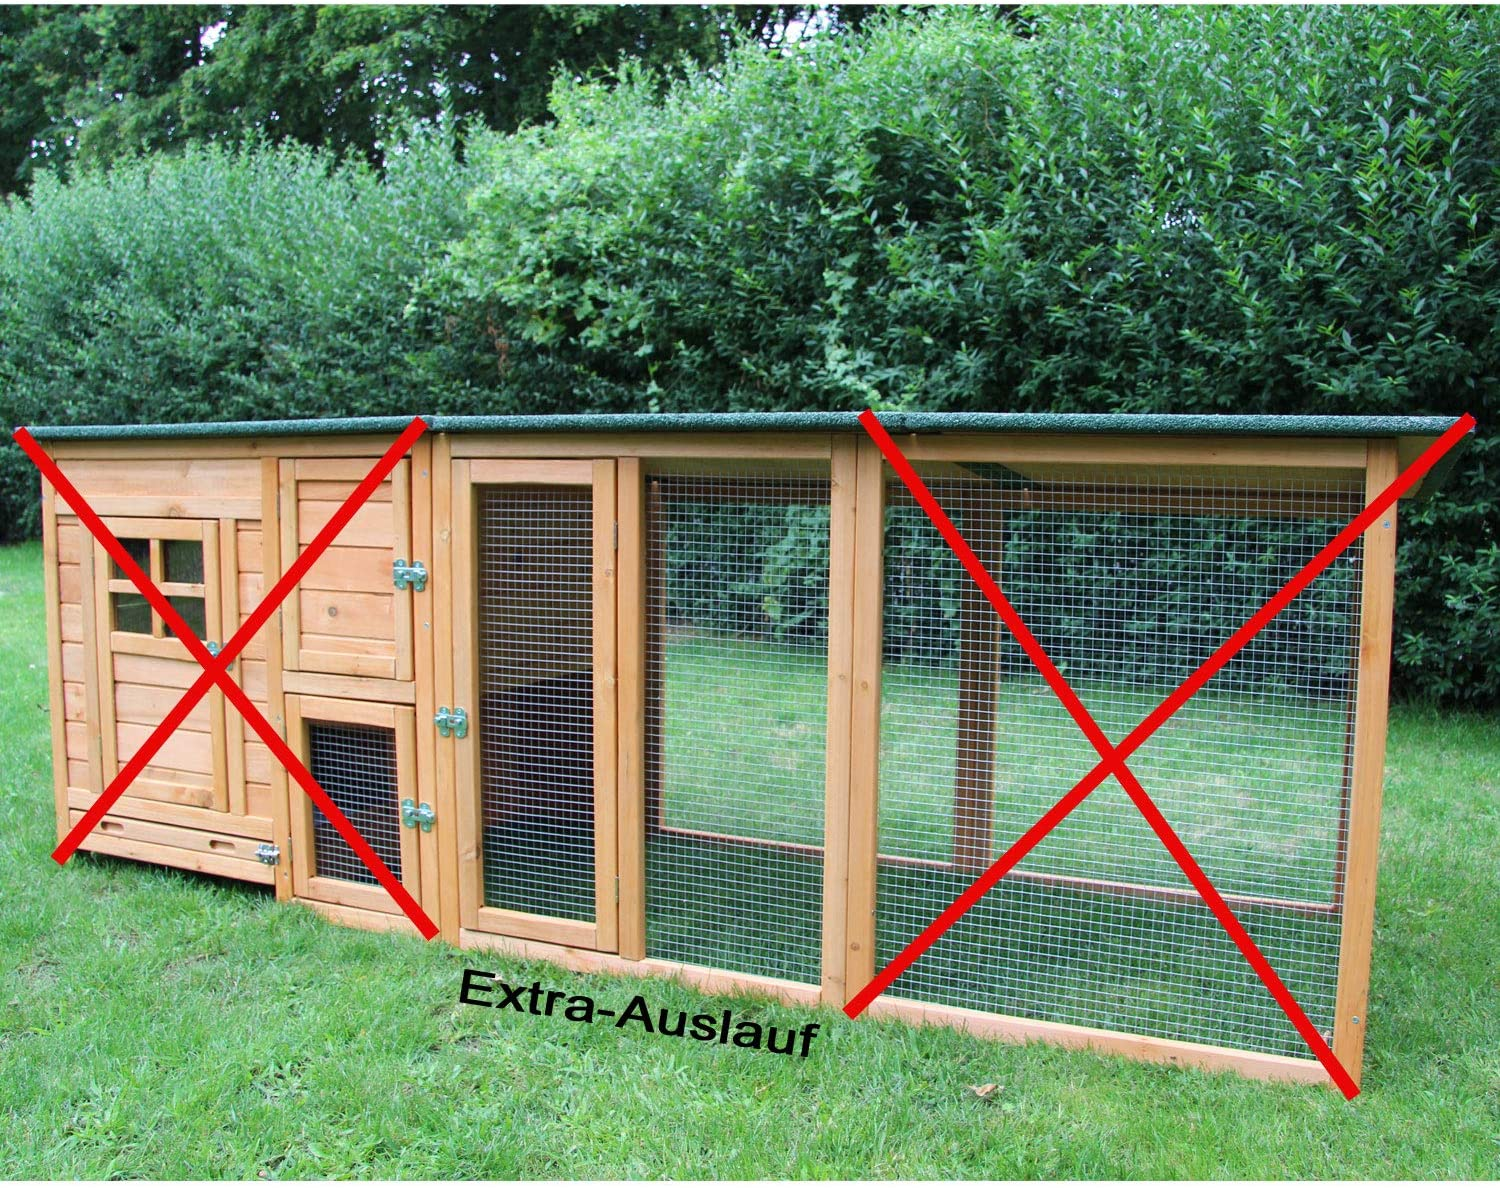 zoo-xxl Paula Chicken Coop Chicken House with Free Run for Outdoor